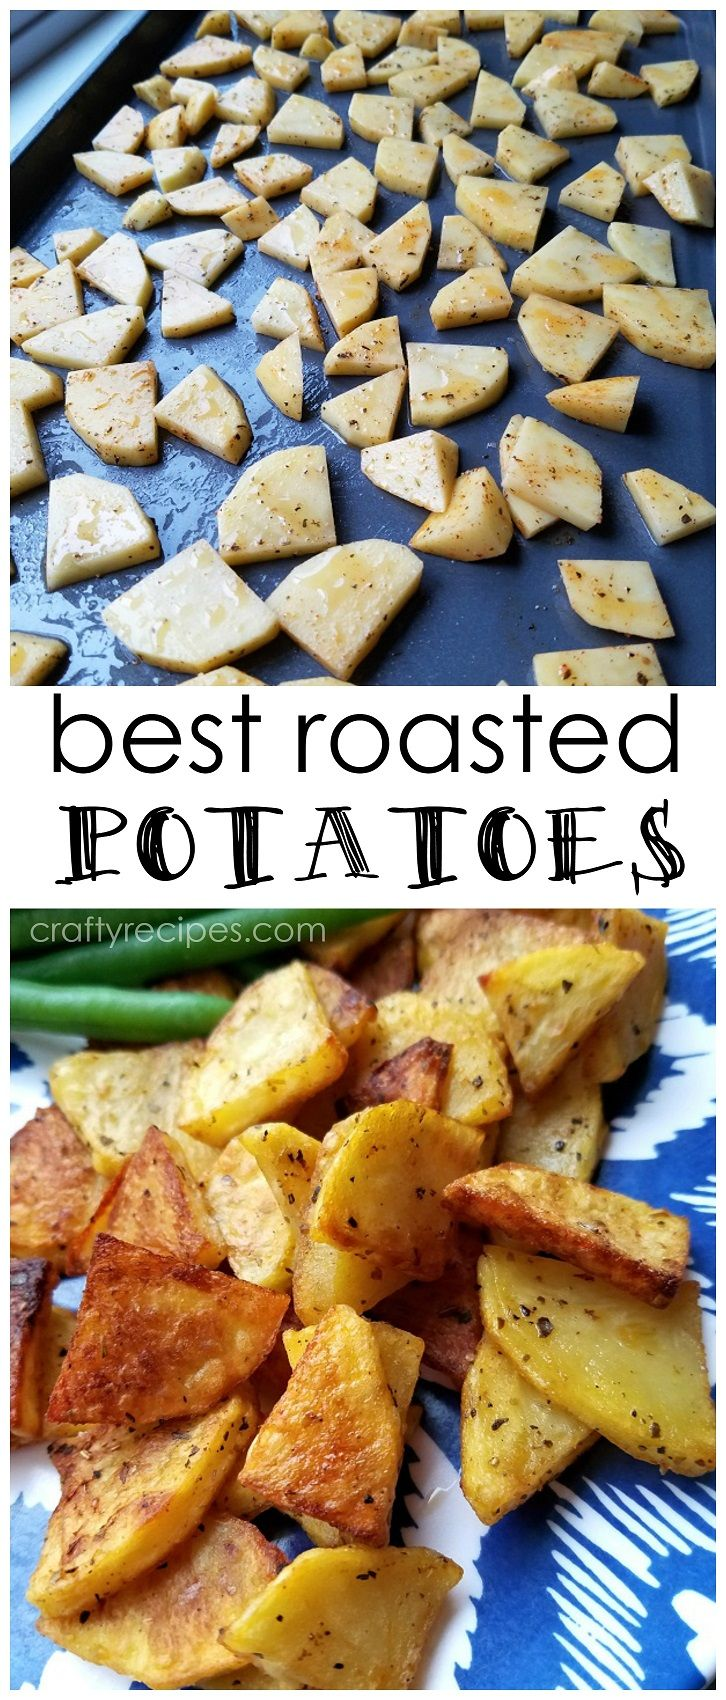 Best way to roast potatoes - easy recipe for a side to your dinner!